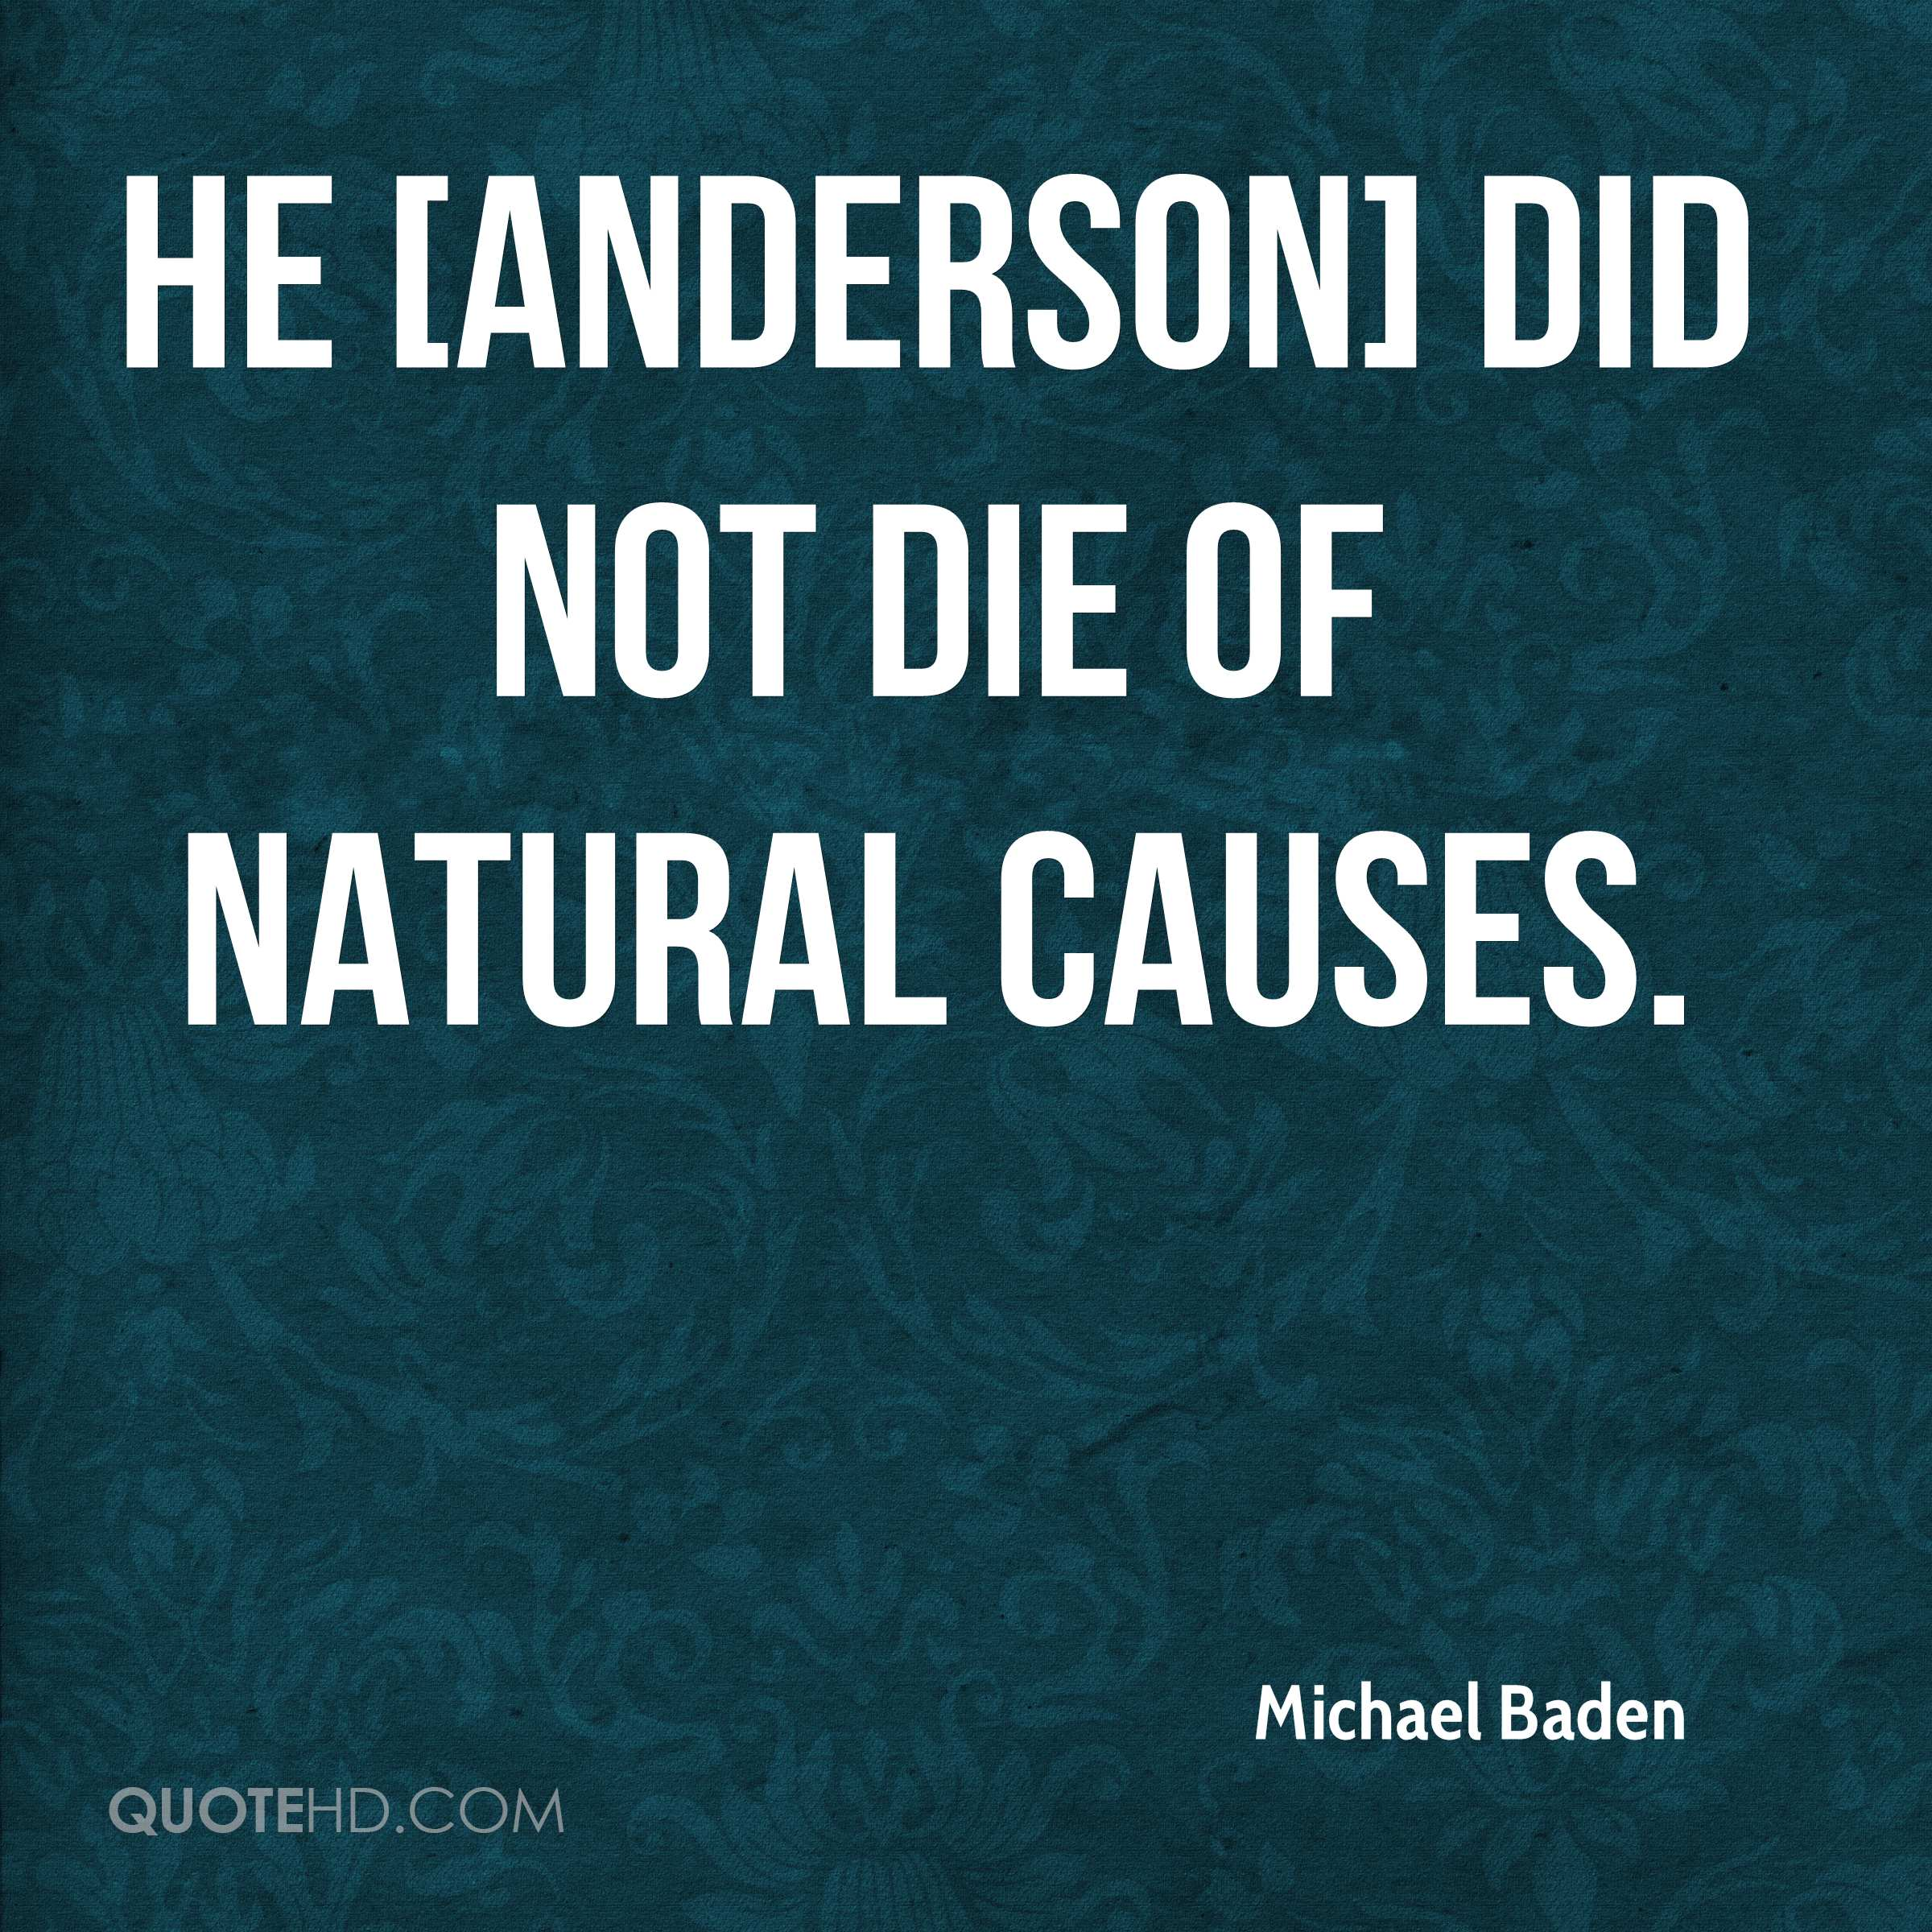 He [Anderson] did not die of natural causes.